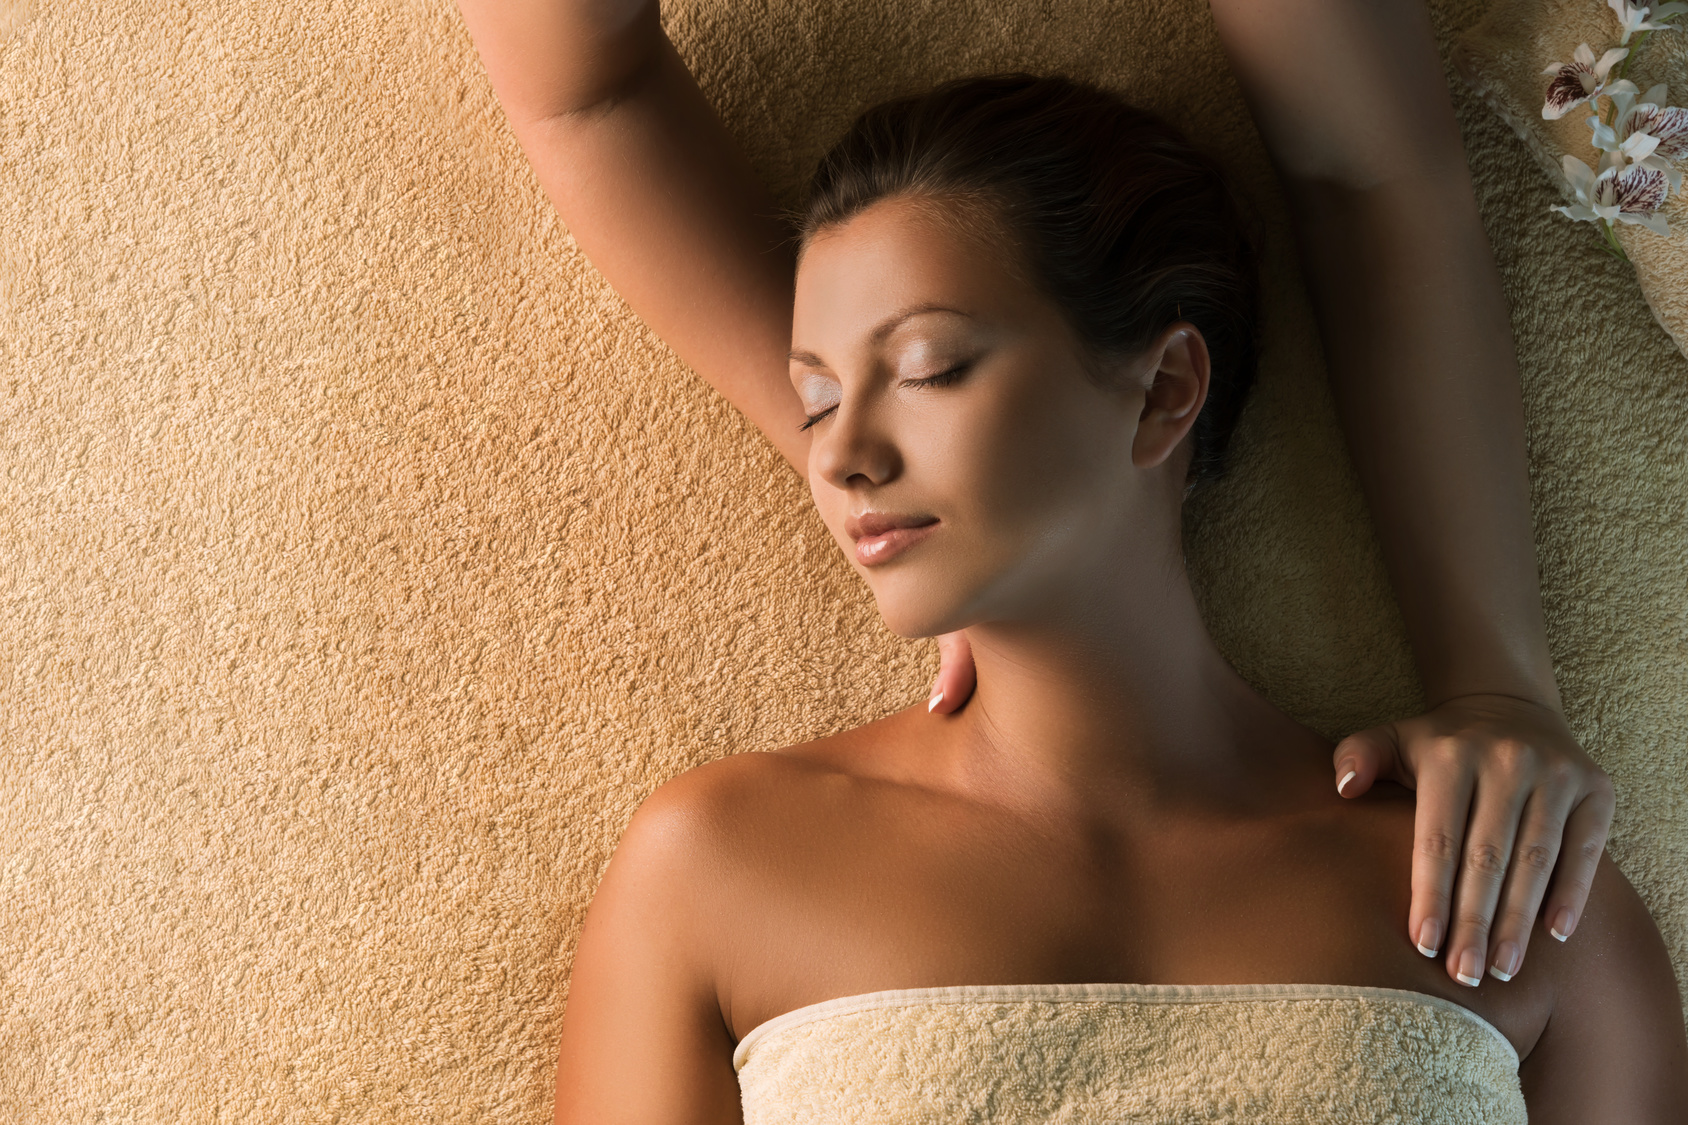 The beautiful girl has relaxing massage. Spa treatment